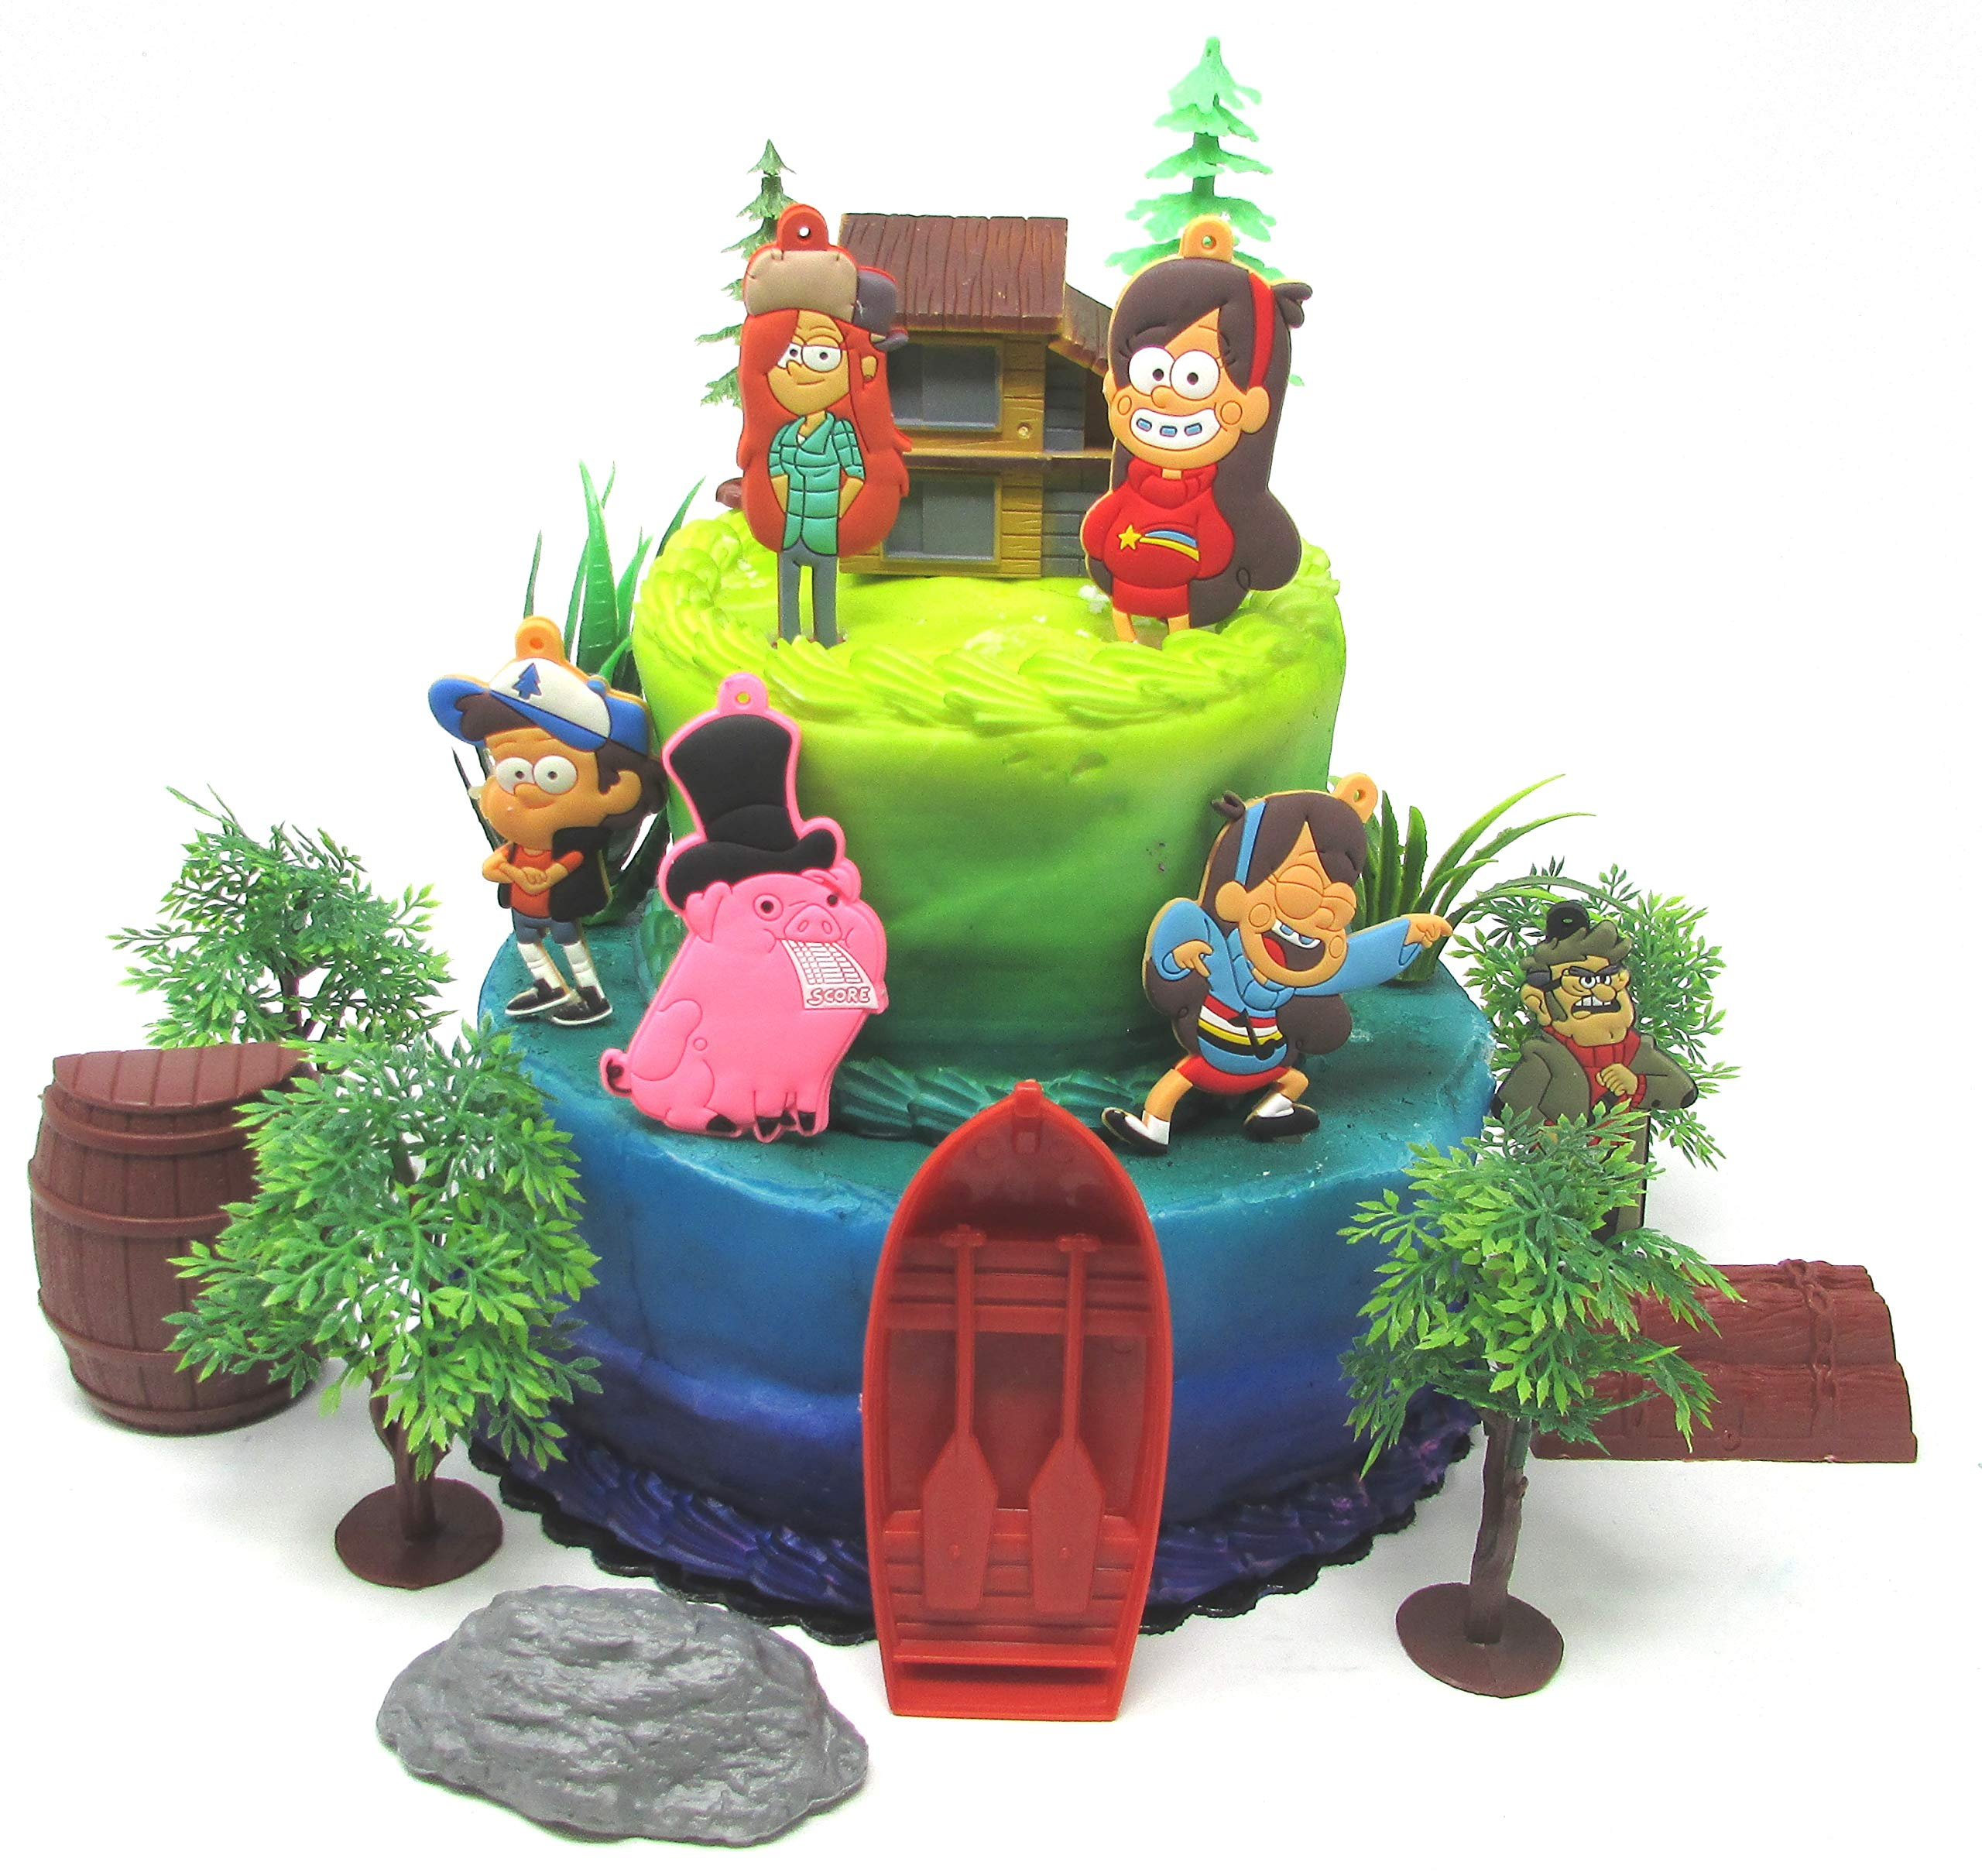 Gravity Falls Deluxe Birthday Cake Topper Set Featuring Gravity Fall Characters and Themed Accessories by Cake Toppers